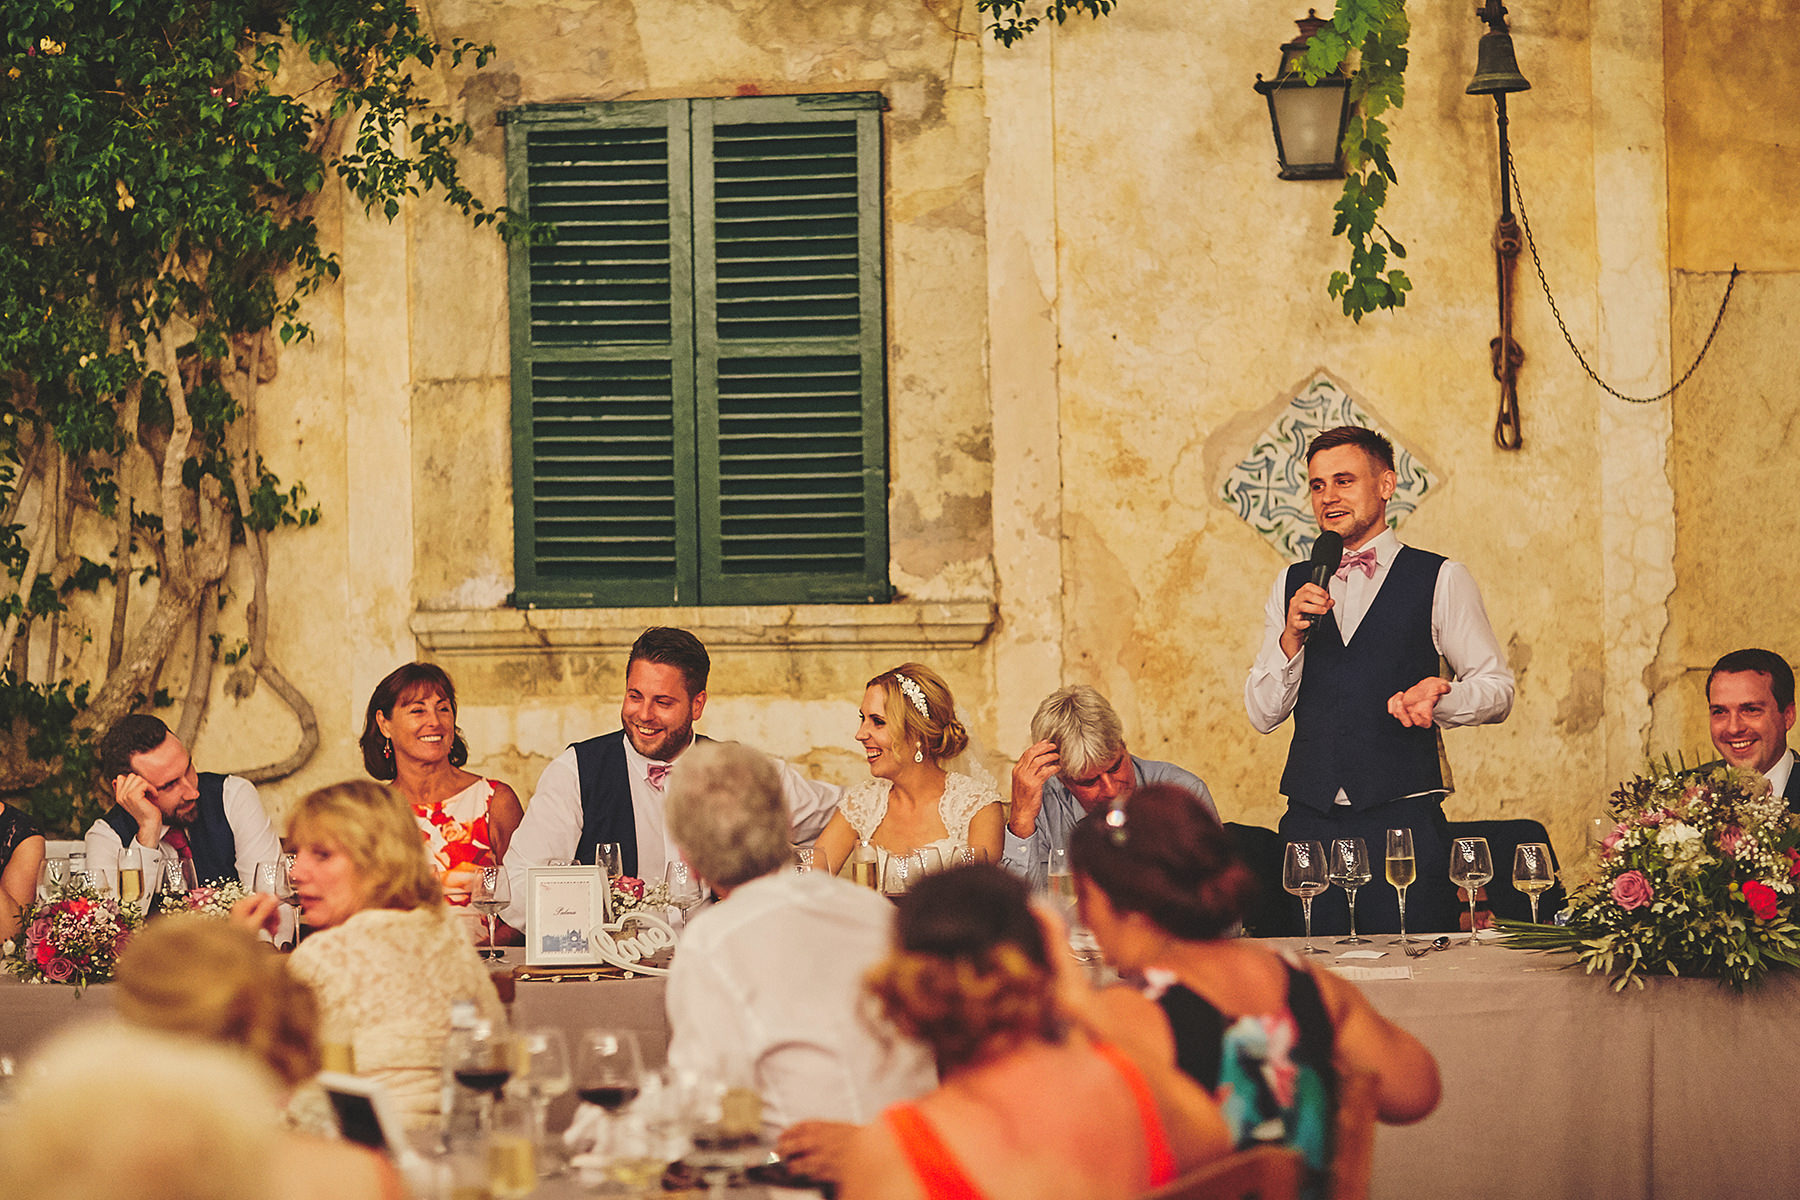 412 - Destination wedding in a magical Mallorca